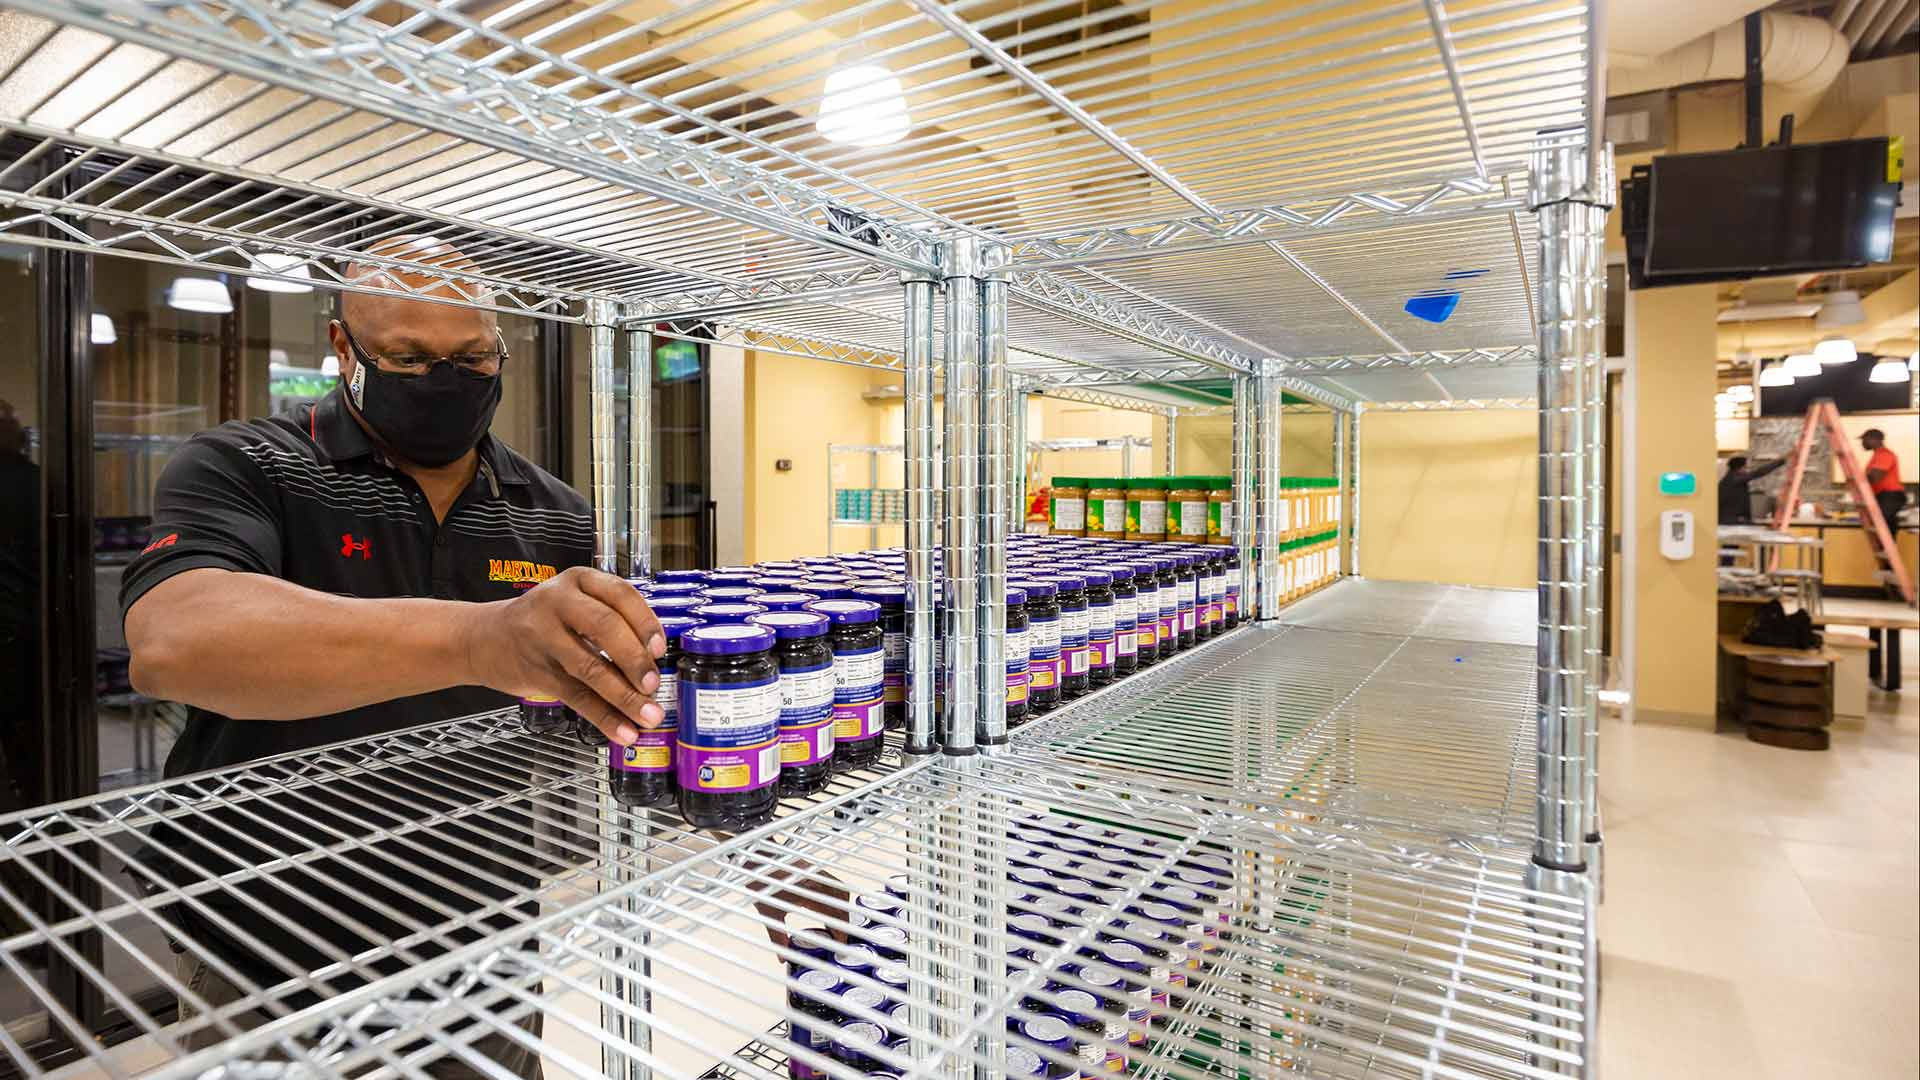 New and Expanded Campus Pantry Opens With Fridge, Freezer and Demo Kitchen